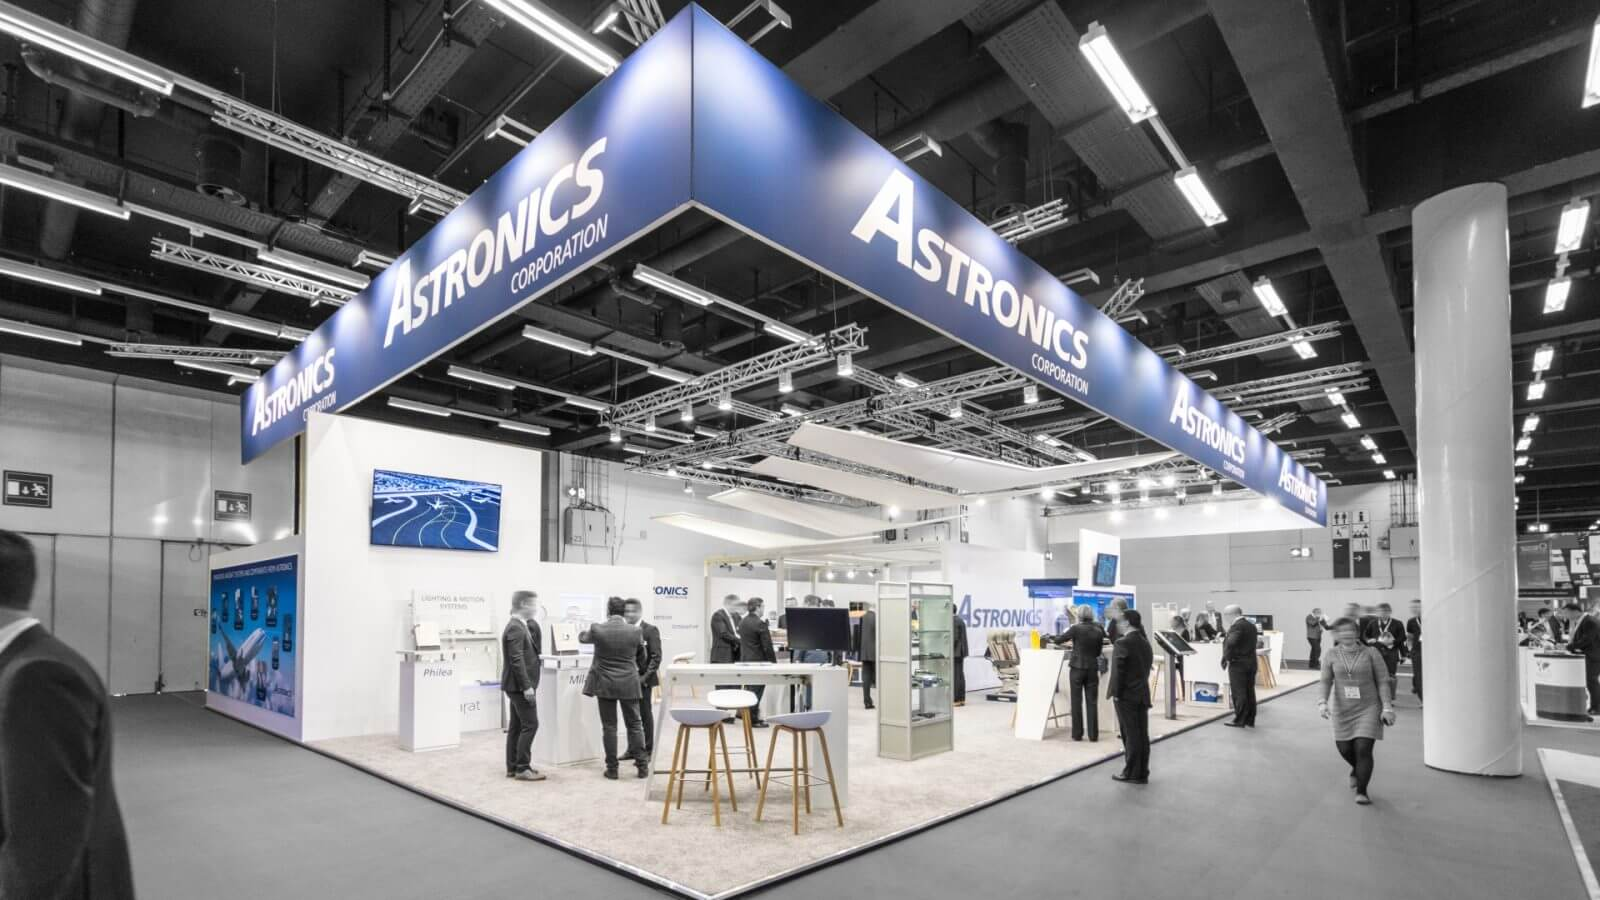 Astronics<br>295 sqm<br>Aircraft Interiors Expo